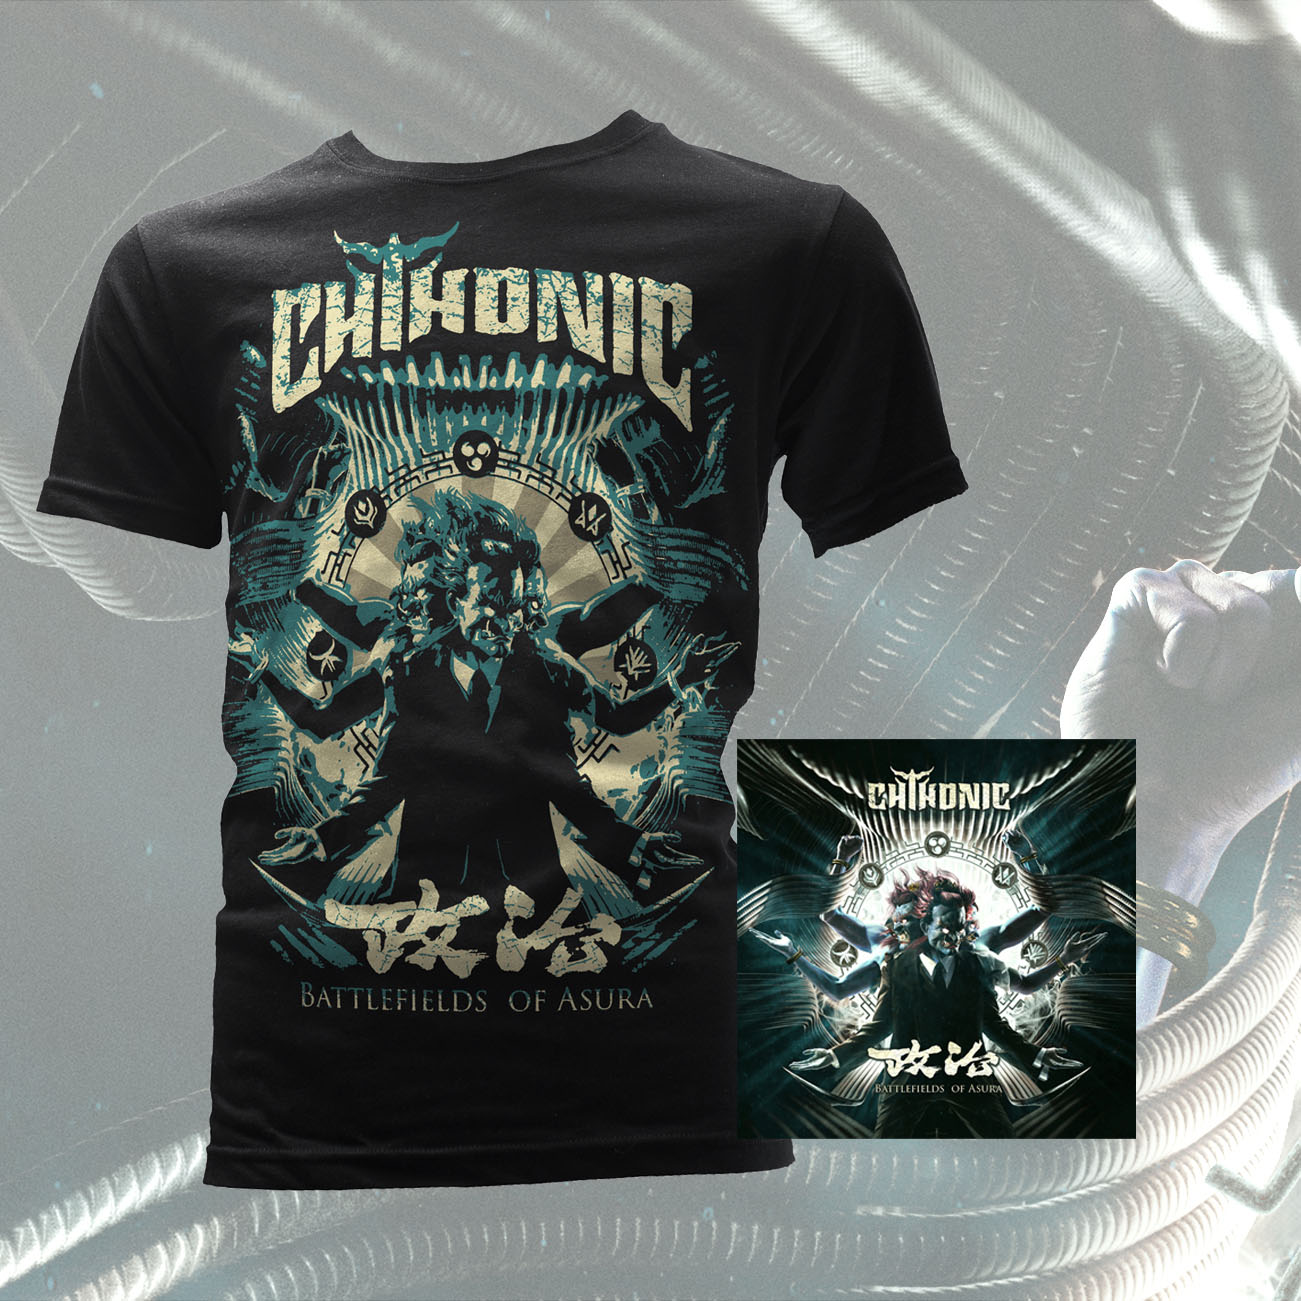 CHTHONIC - 'Battlefields of Asura' (English Version DigiPack CD) + T-Shirt Bundle - CHTHONIC